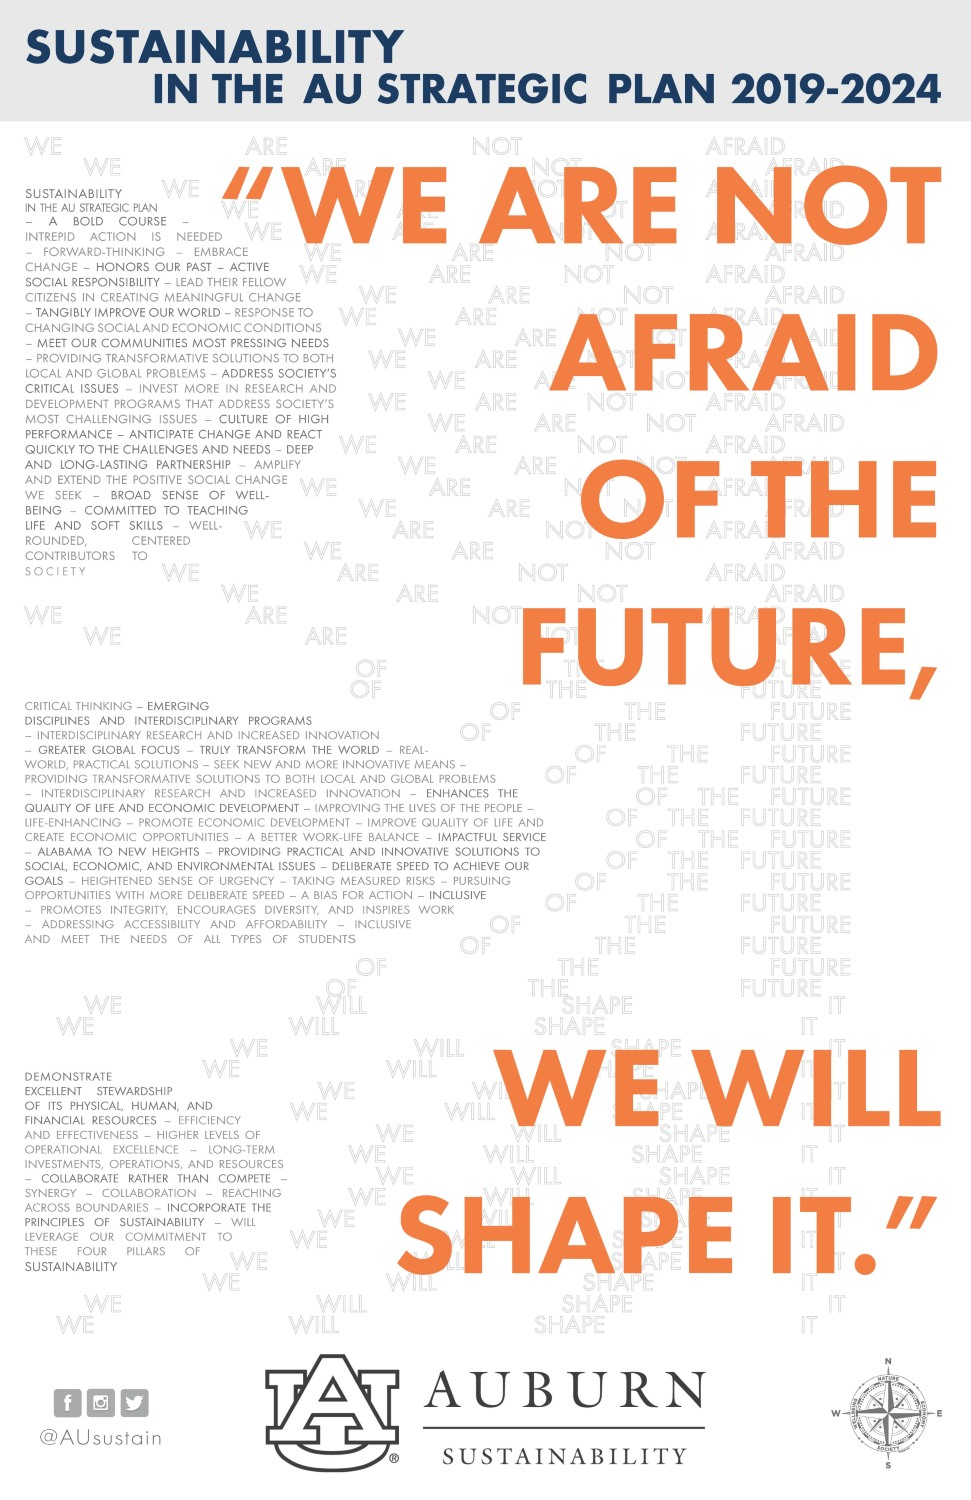 "Graphic quoting Auburn University's Strategic Plan: ""We are not afraid of the future, we will shape it."""